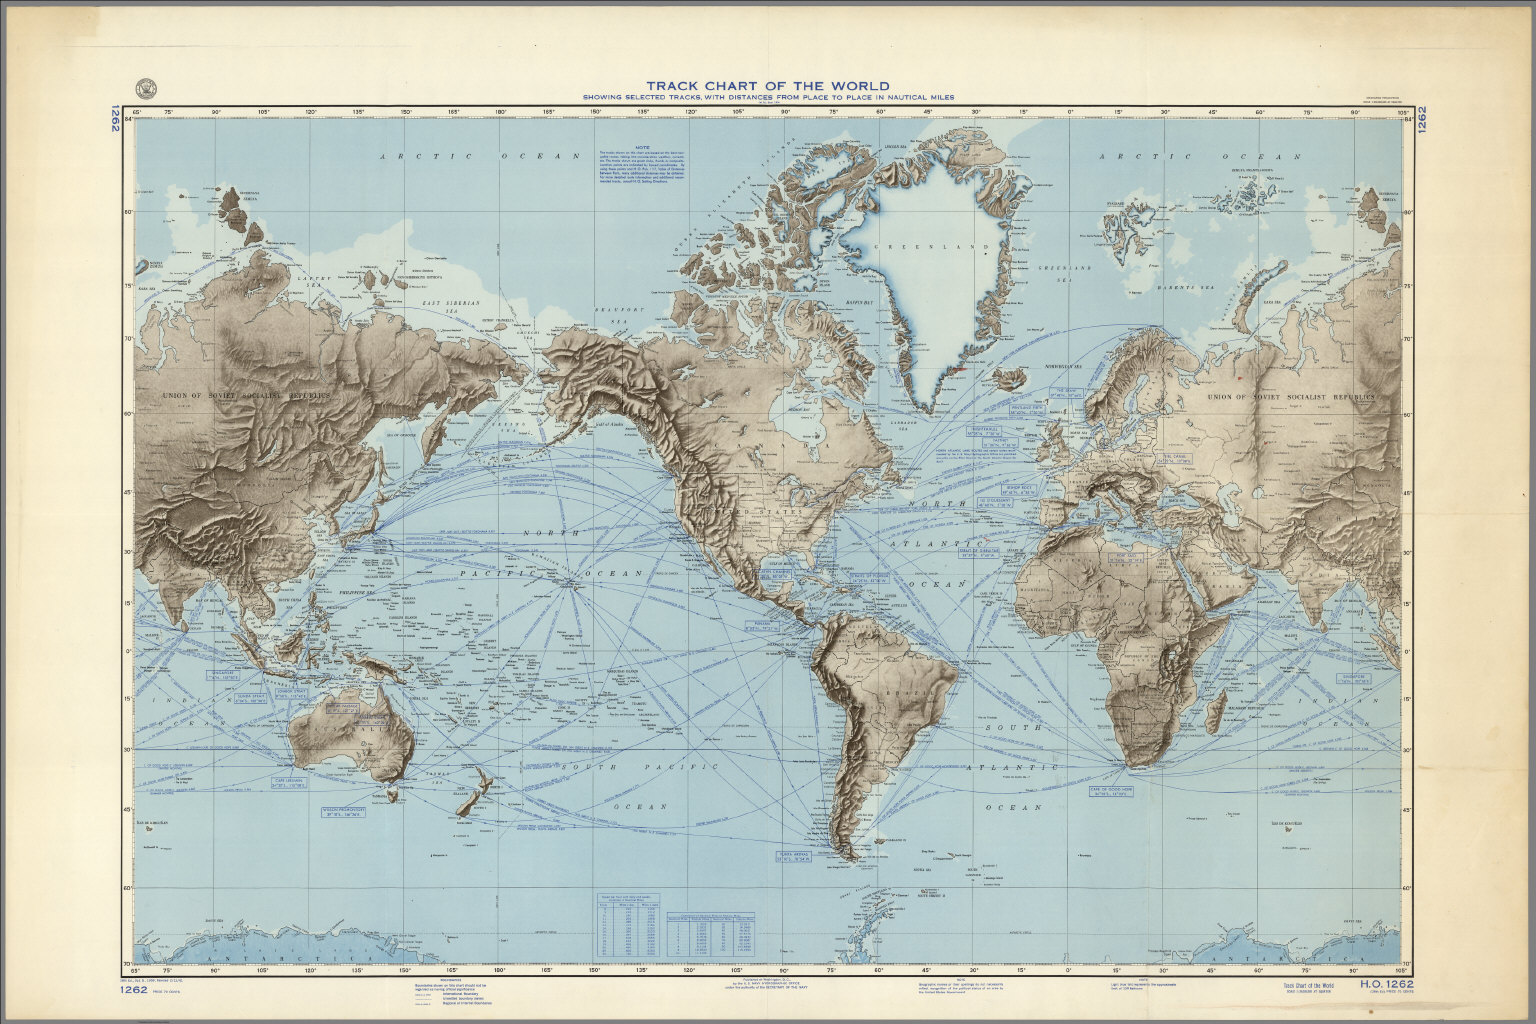 Track chart of the world david rumsey historical map collection track chart of the world gumiabroncs Image collections